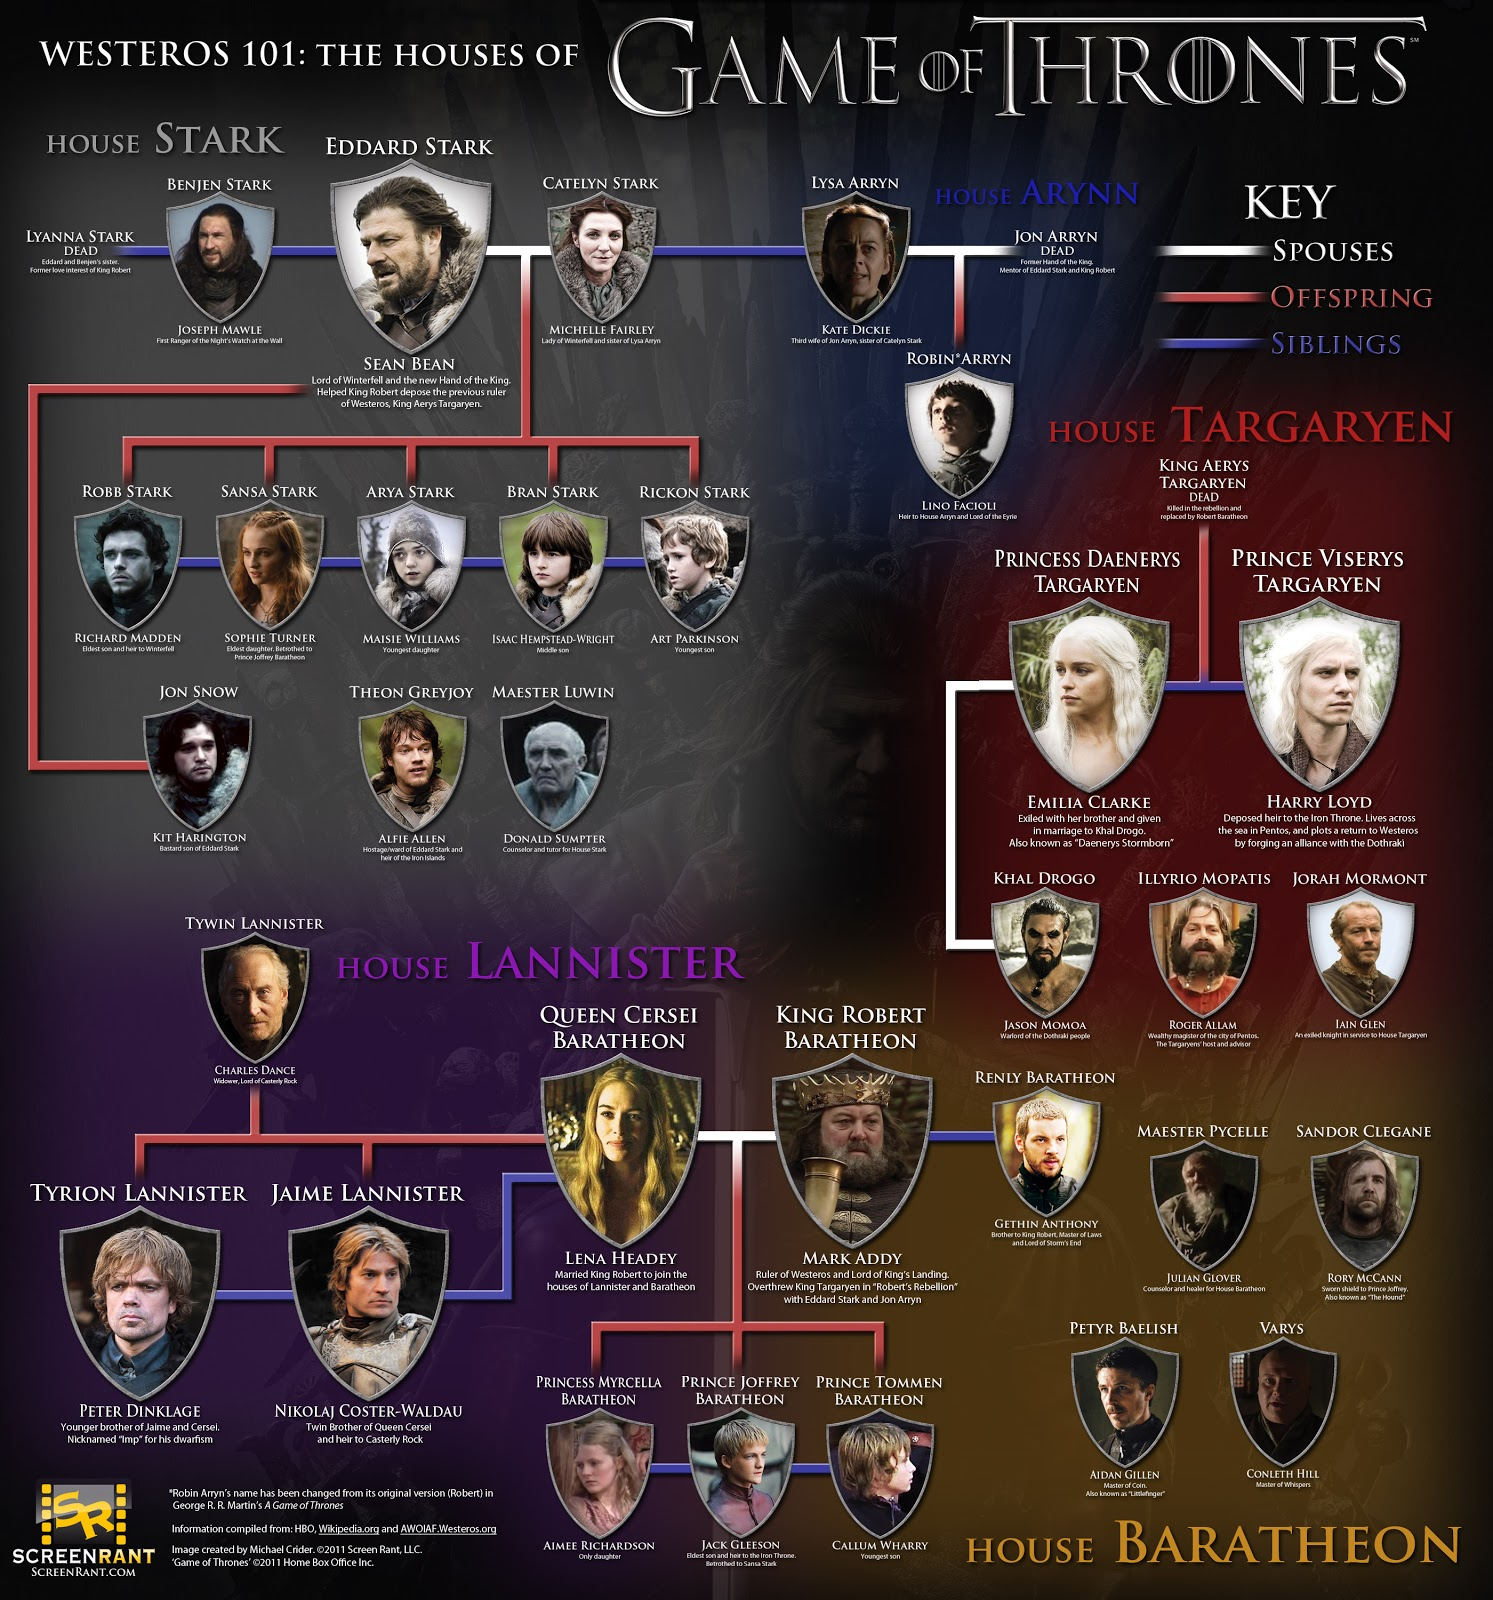 Juego de Tronos Kt-game-of-thrones-westeros-lineage